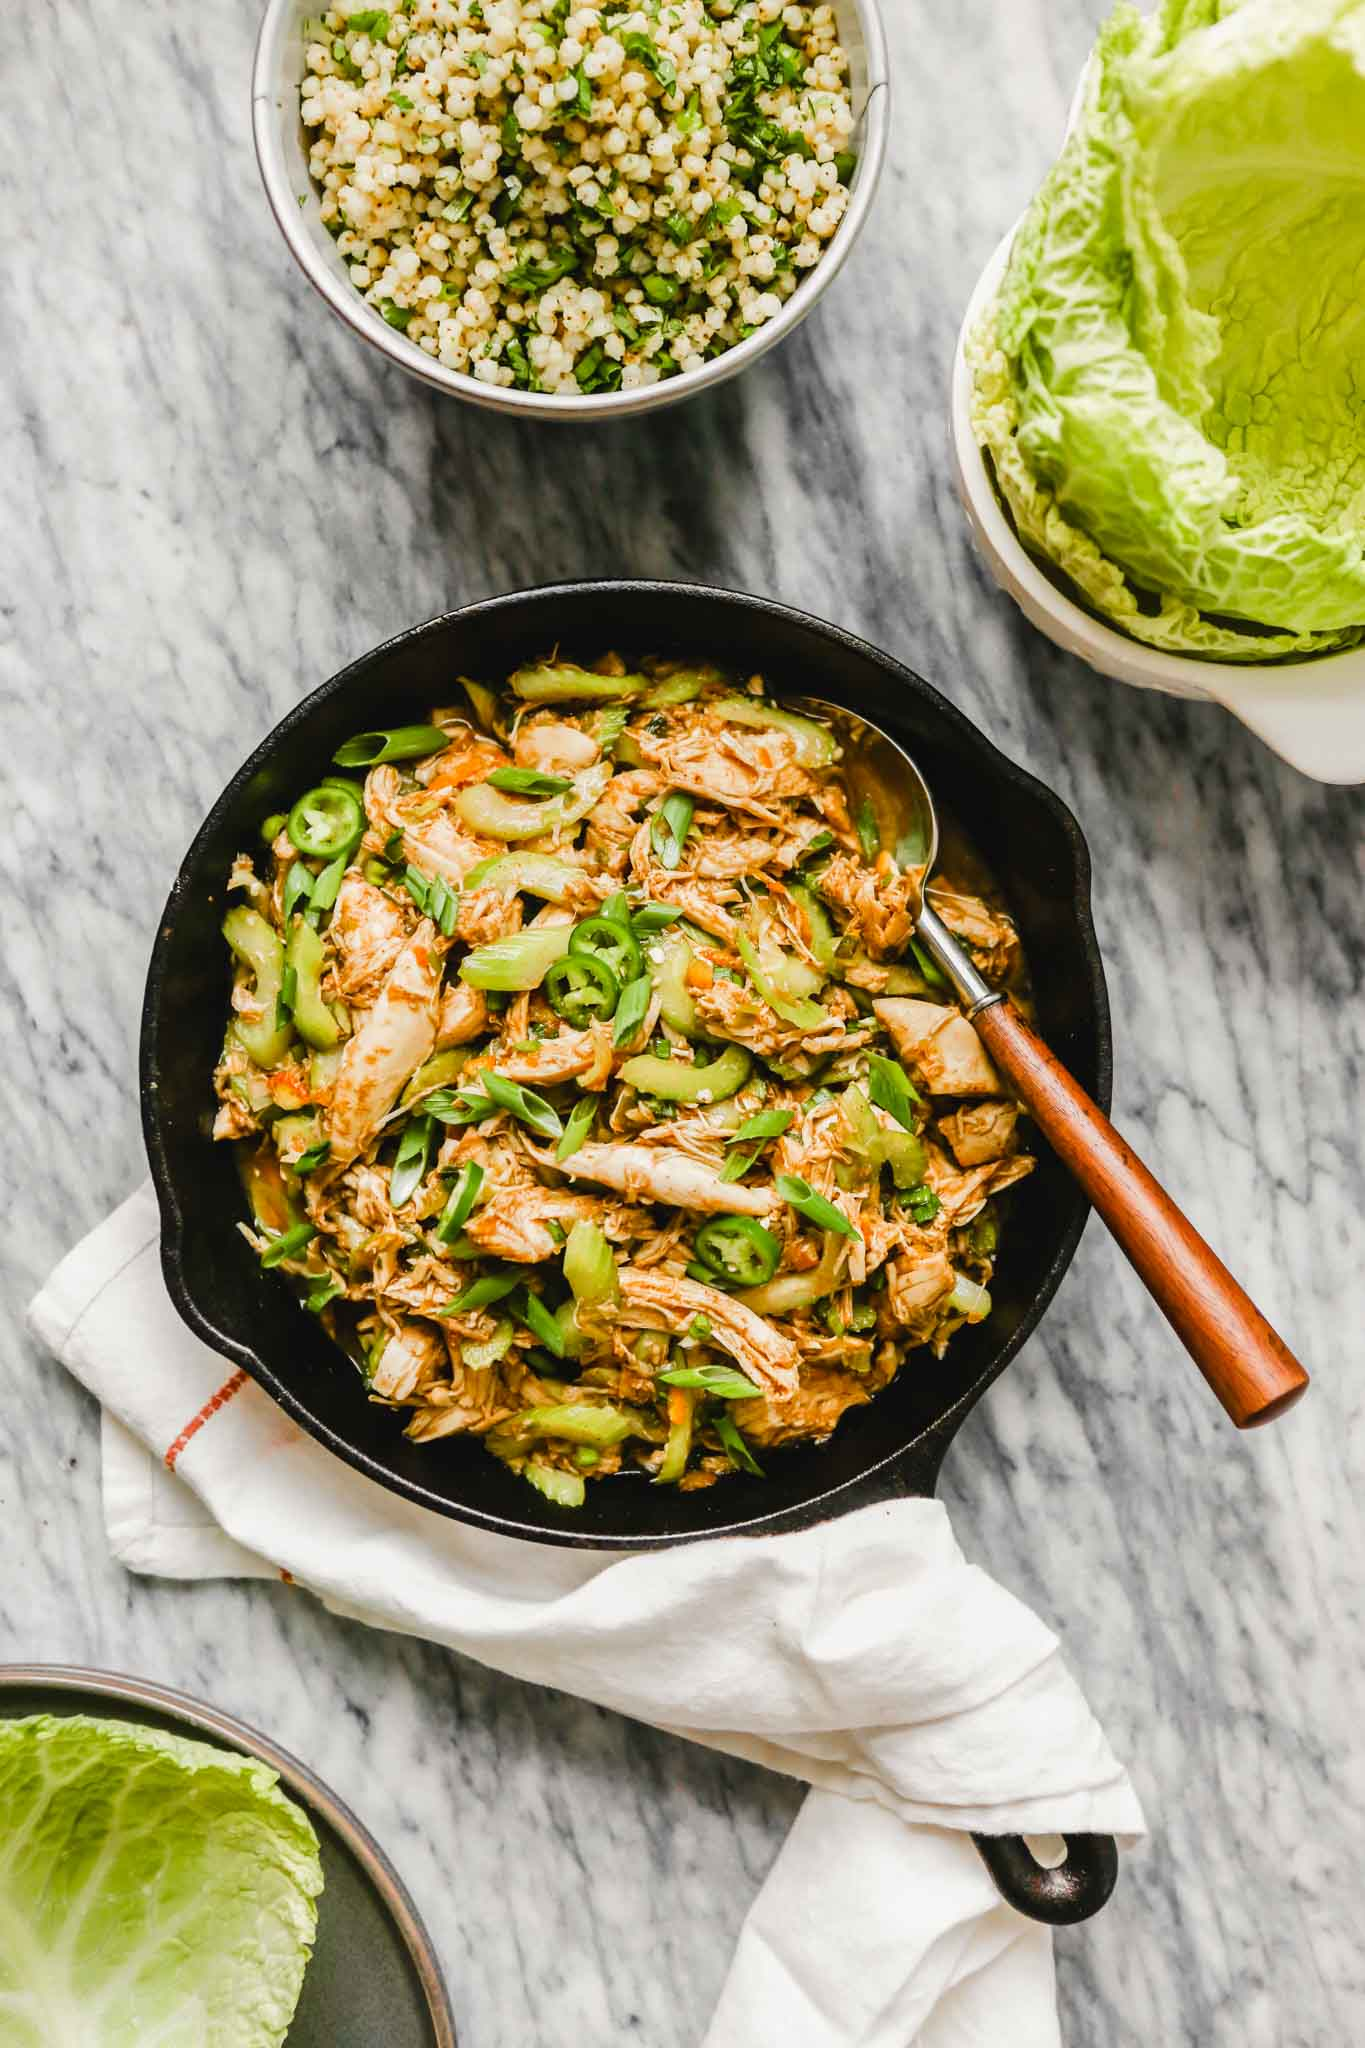 Overhead image of turkey lettuce wrap mixture in a cast iron skillet with cabbage leaves off to the side